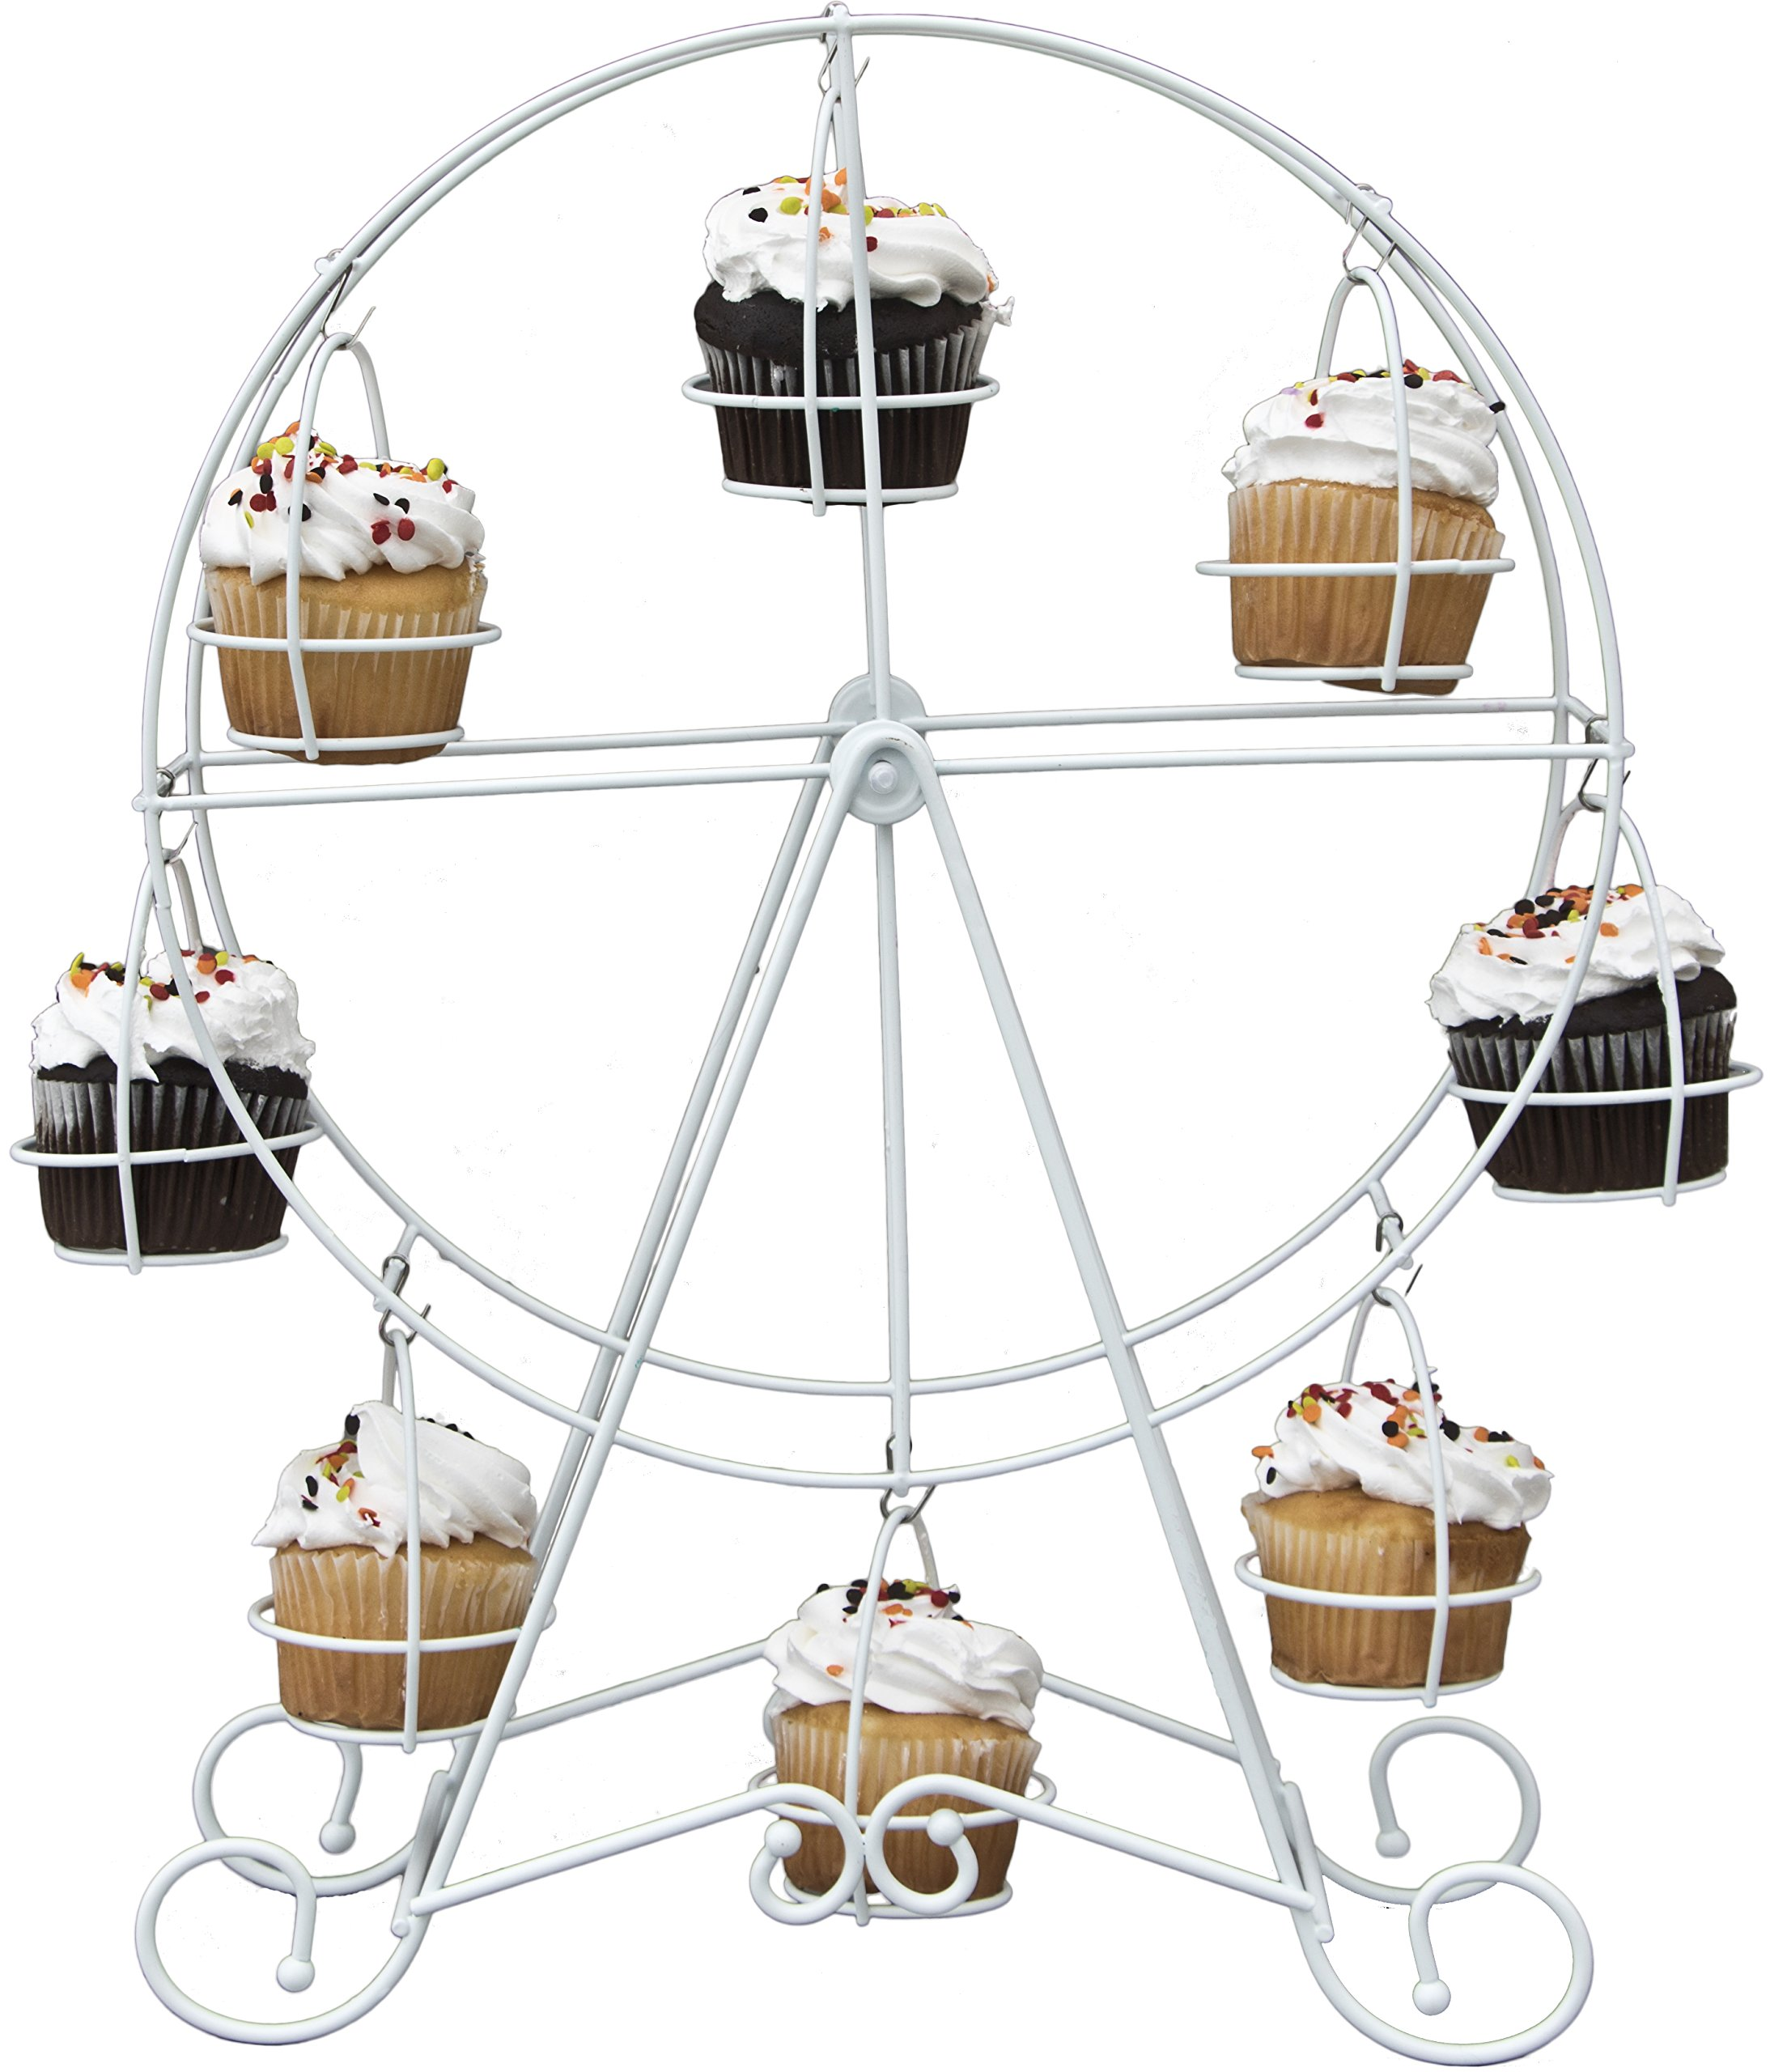 8 Count Ferris Wheel Cupcake Stand Holder Display by Cooking Upgrades